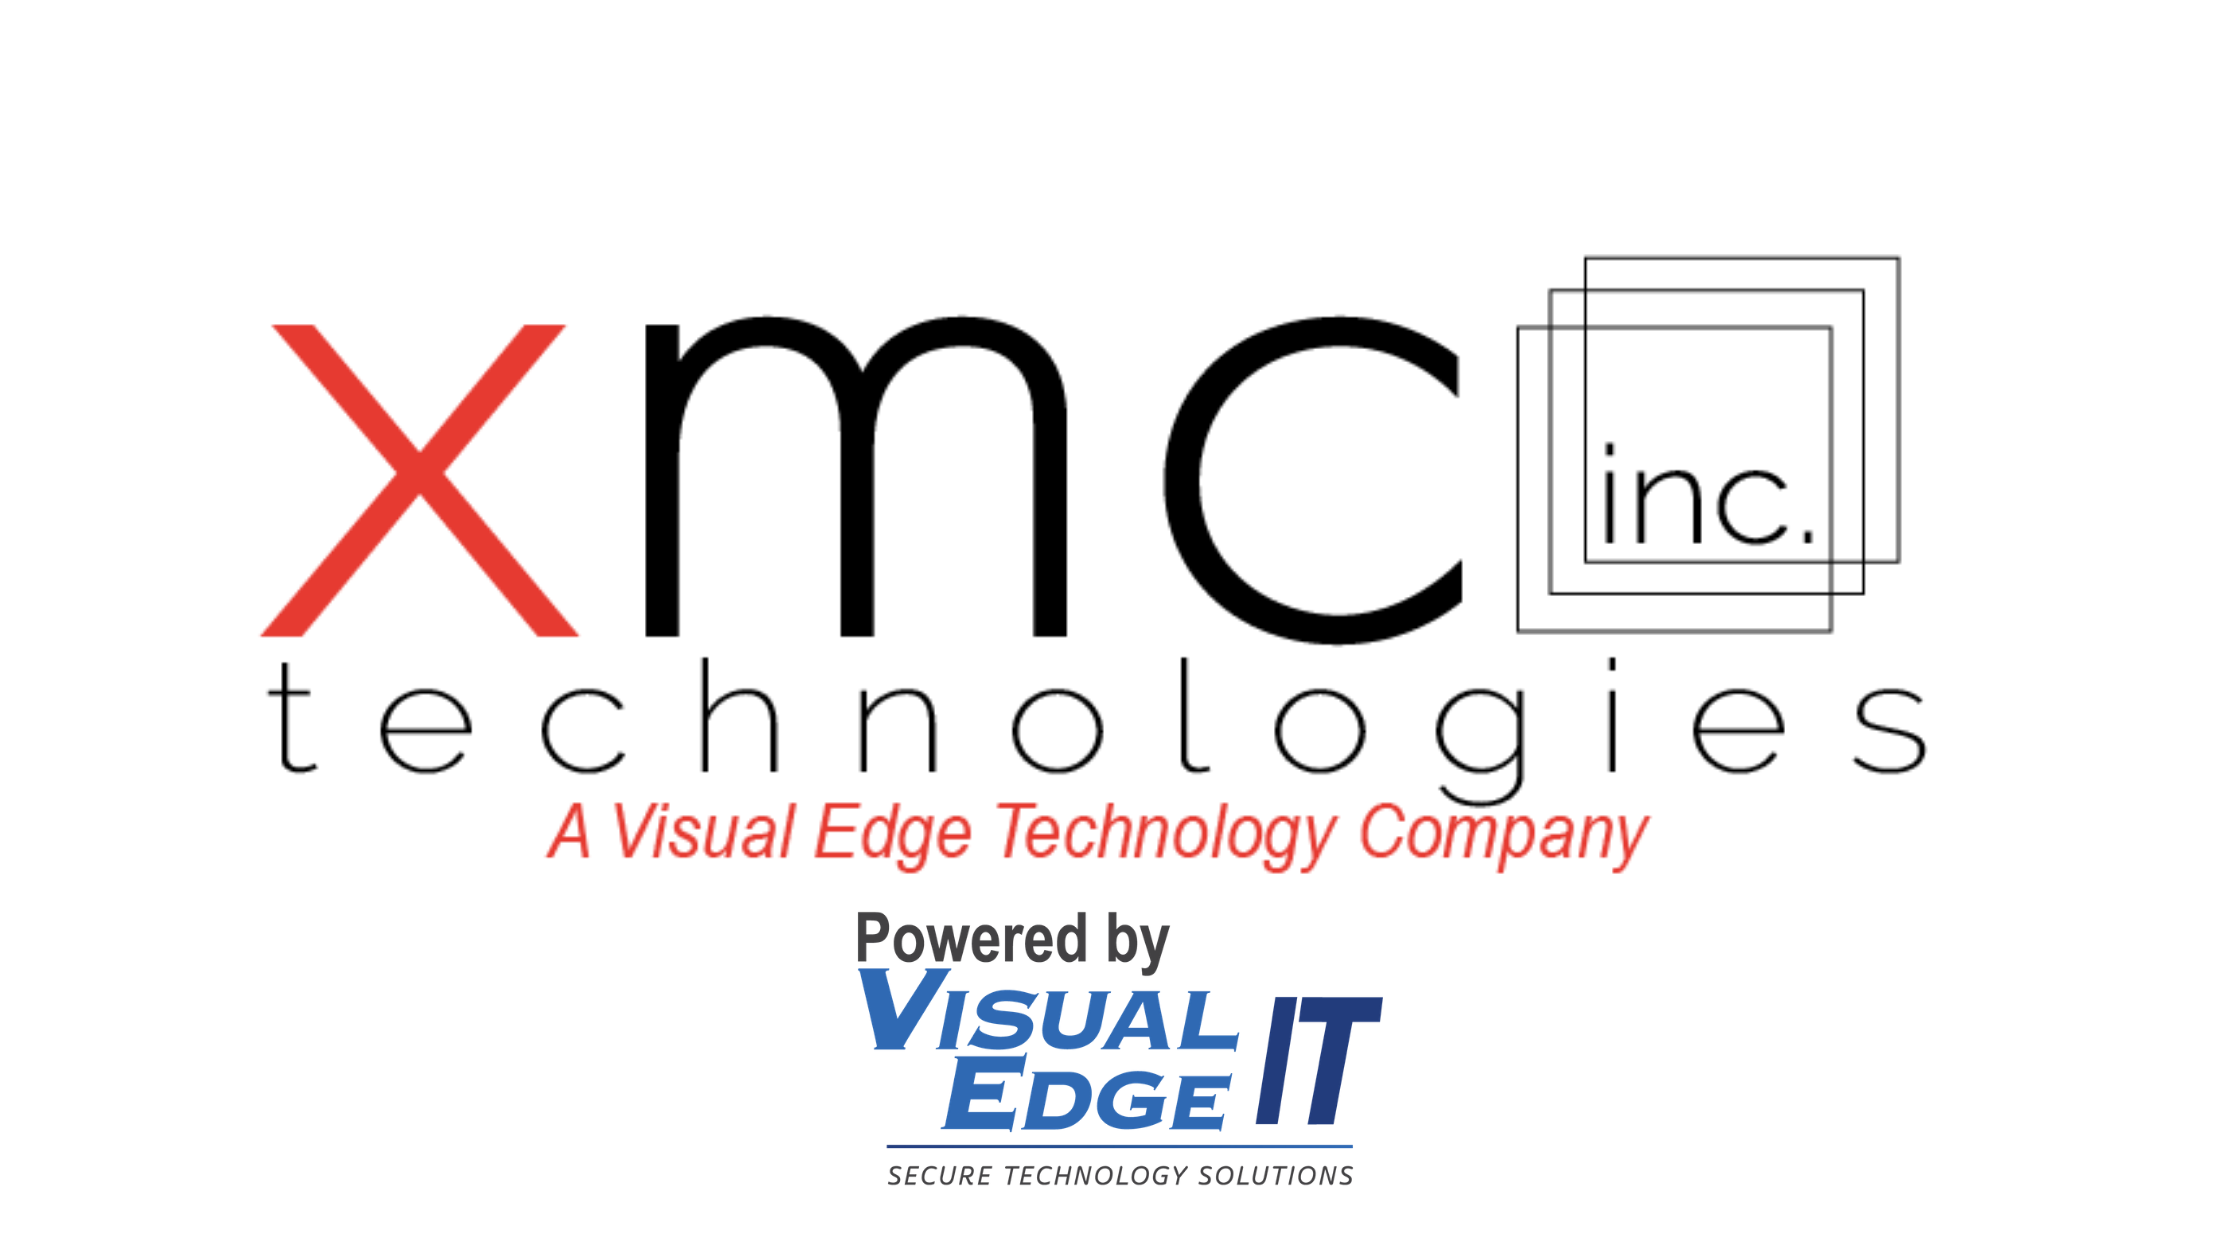 XMC Powered by VEIT Page Header